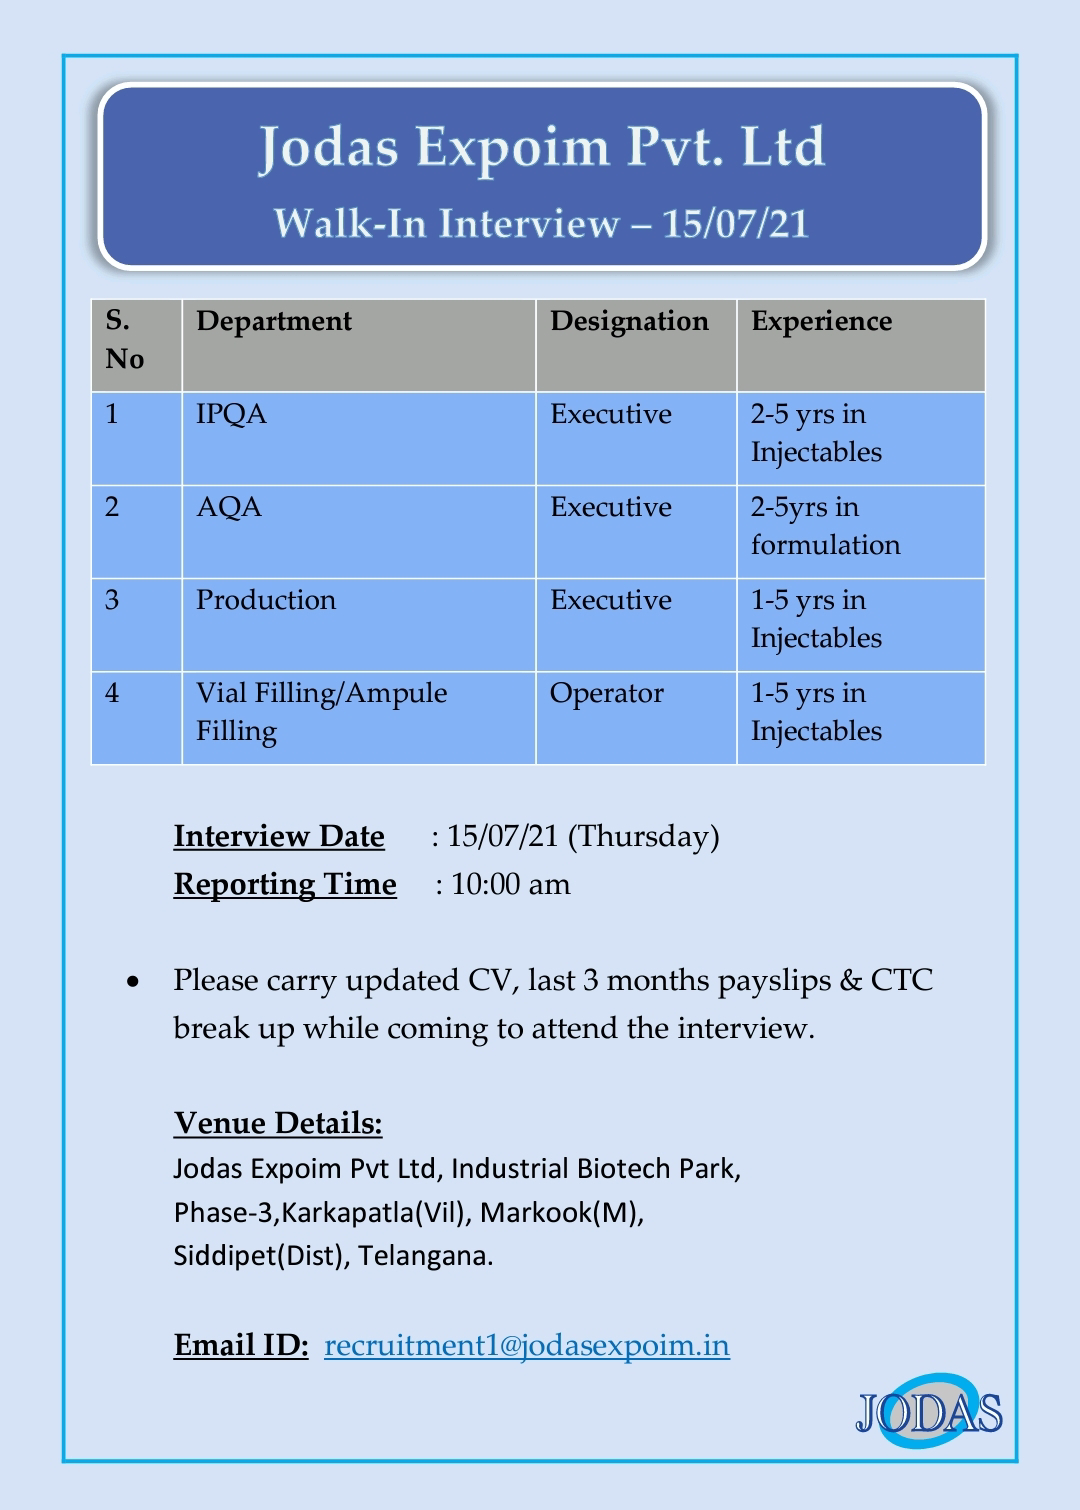 Walk-in For Production, IPQA, QA, Vial Filling In Injectables At Jodas Expoim